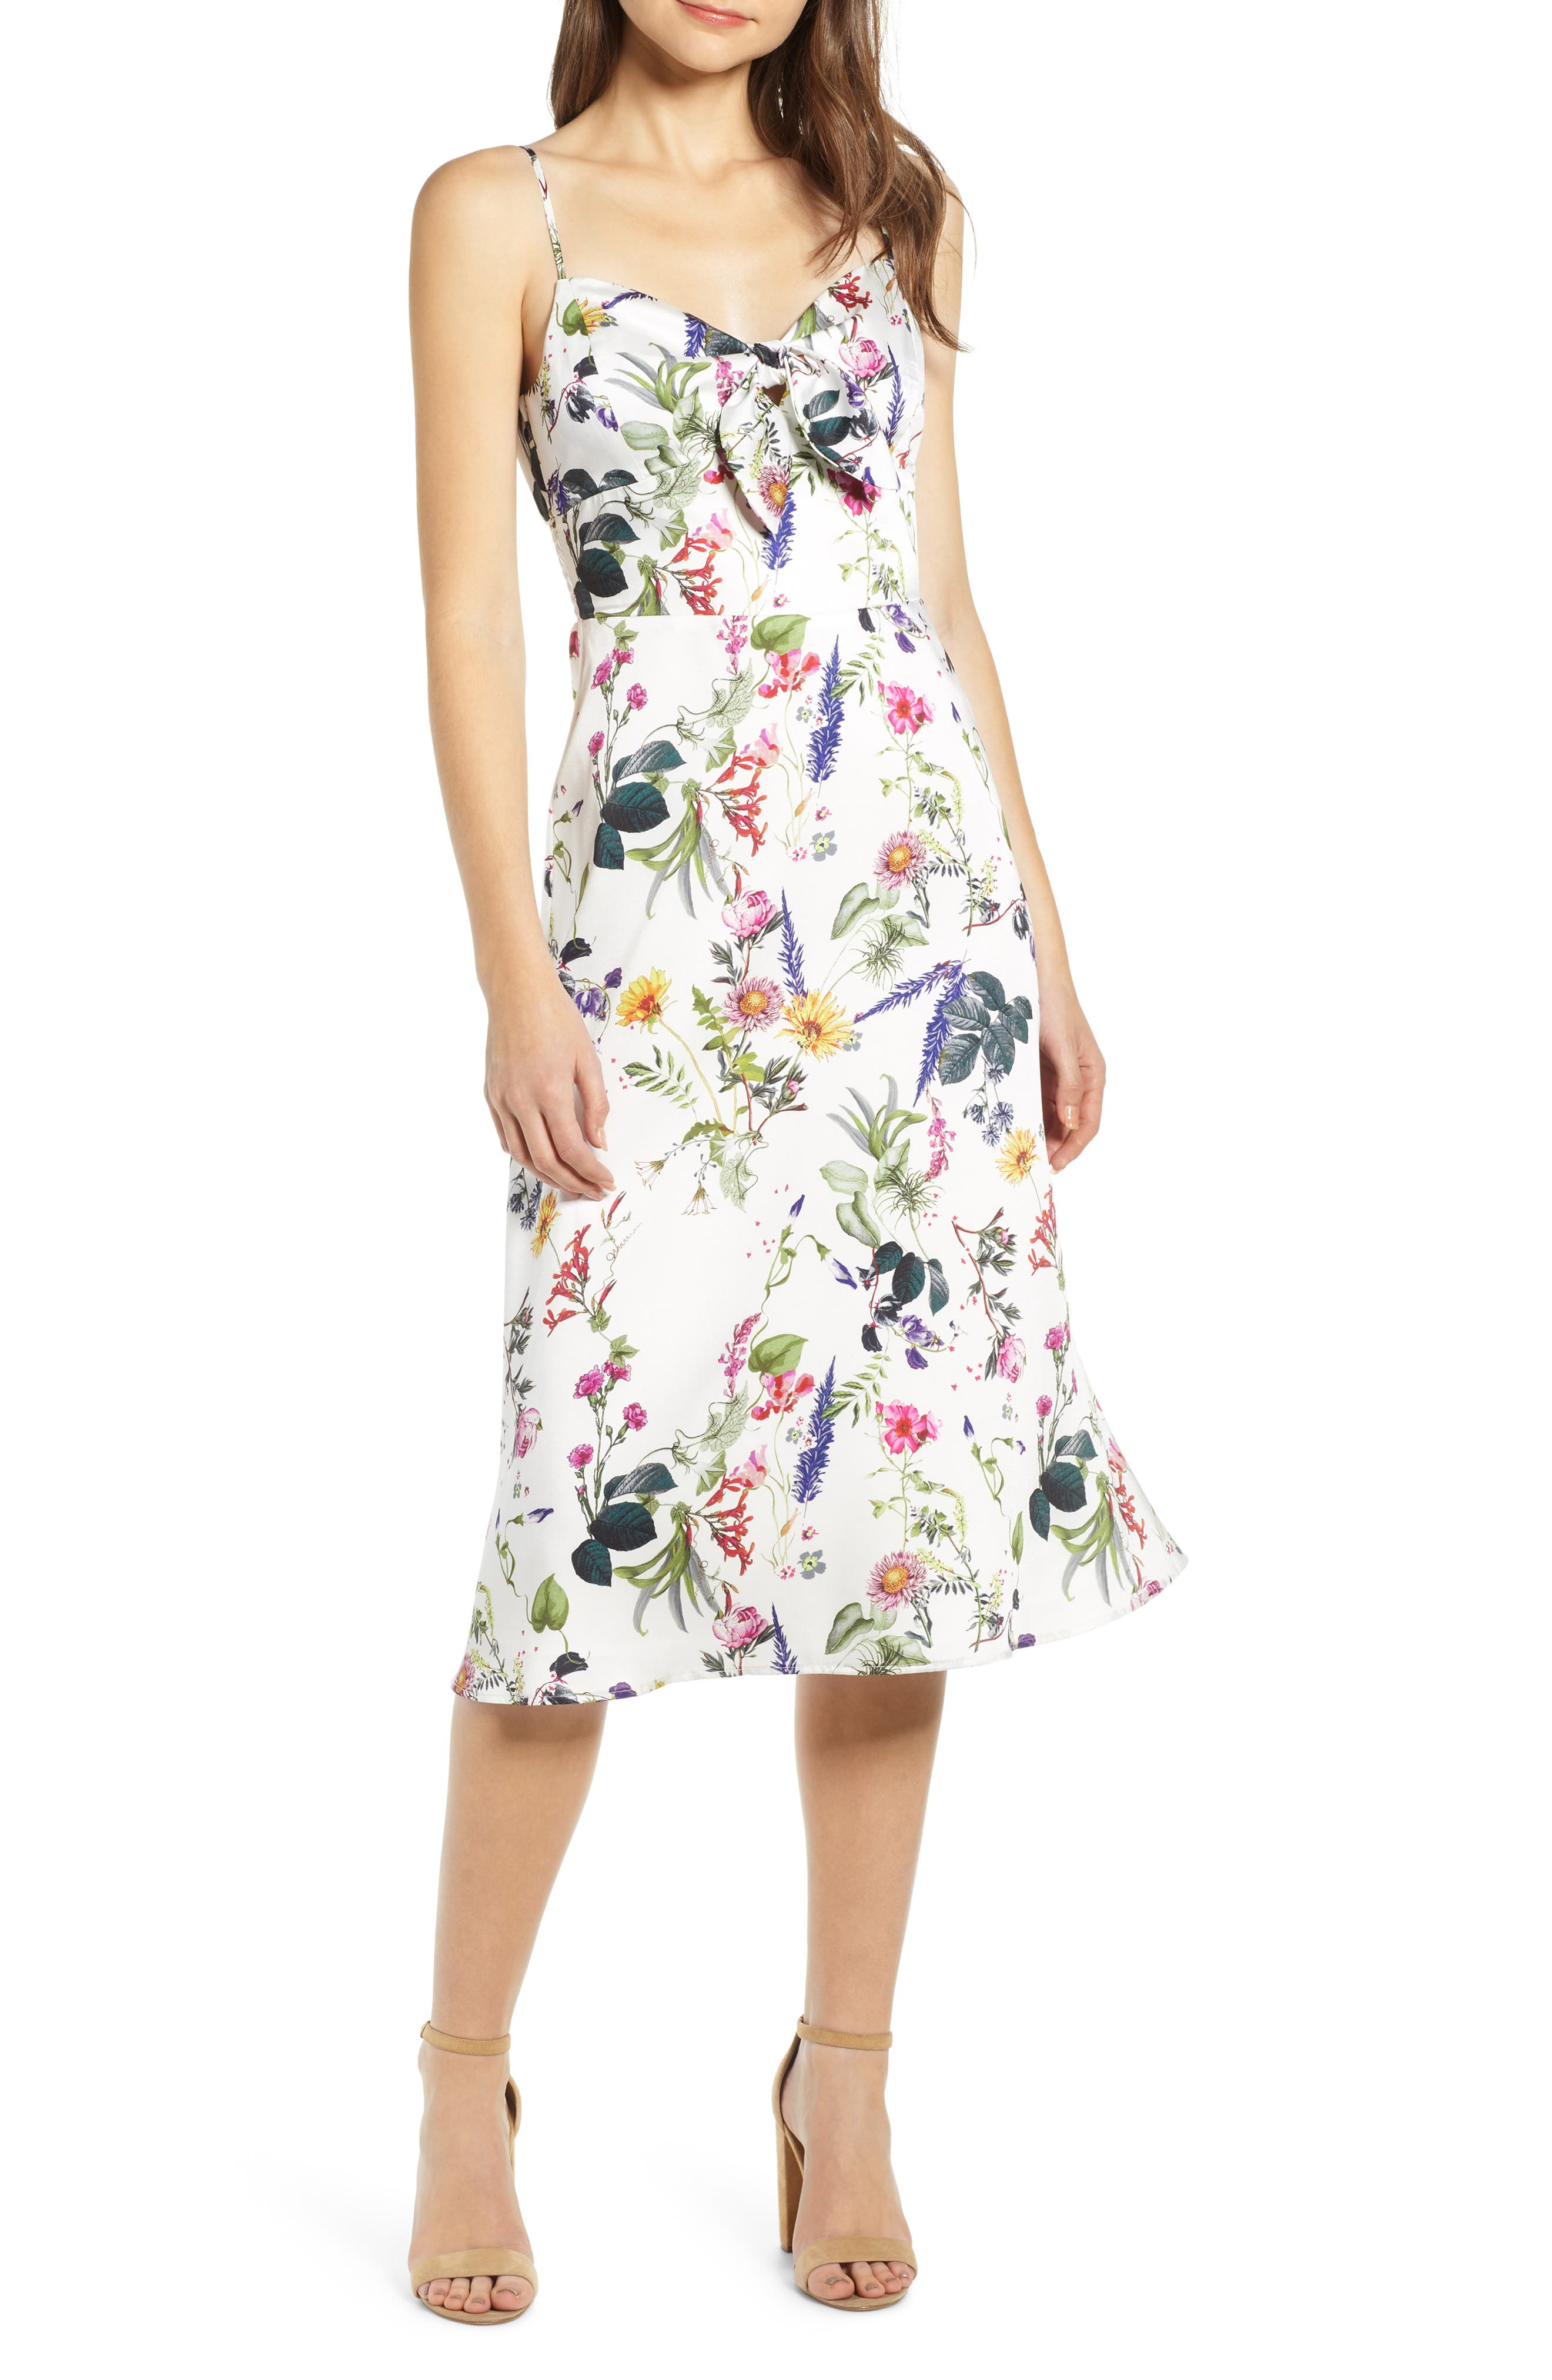 Bailey 44 Puff Pastry Floral Satin Dress, White